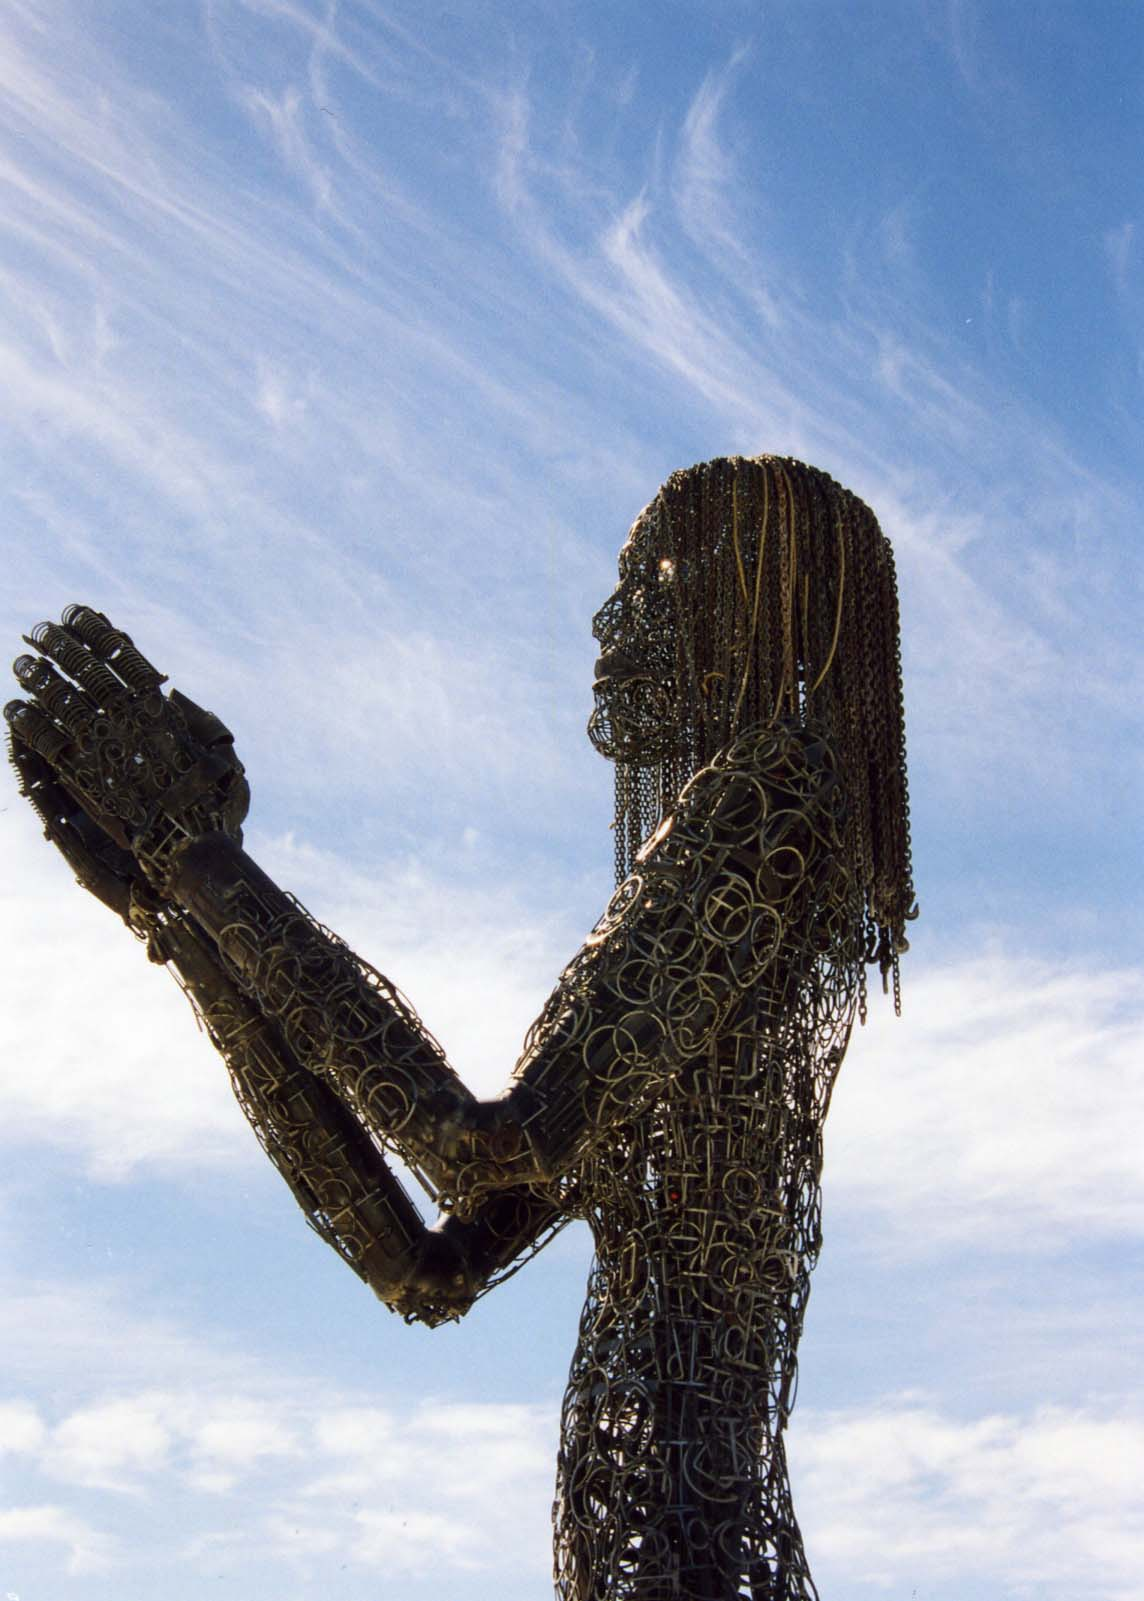 Hundreds of works of art are displayed annually at Burning Man. This woman, who was kneeling, stood at least 15 feet tall.